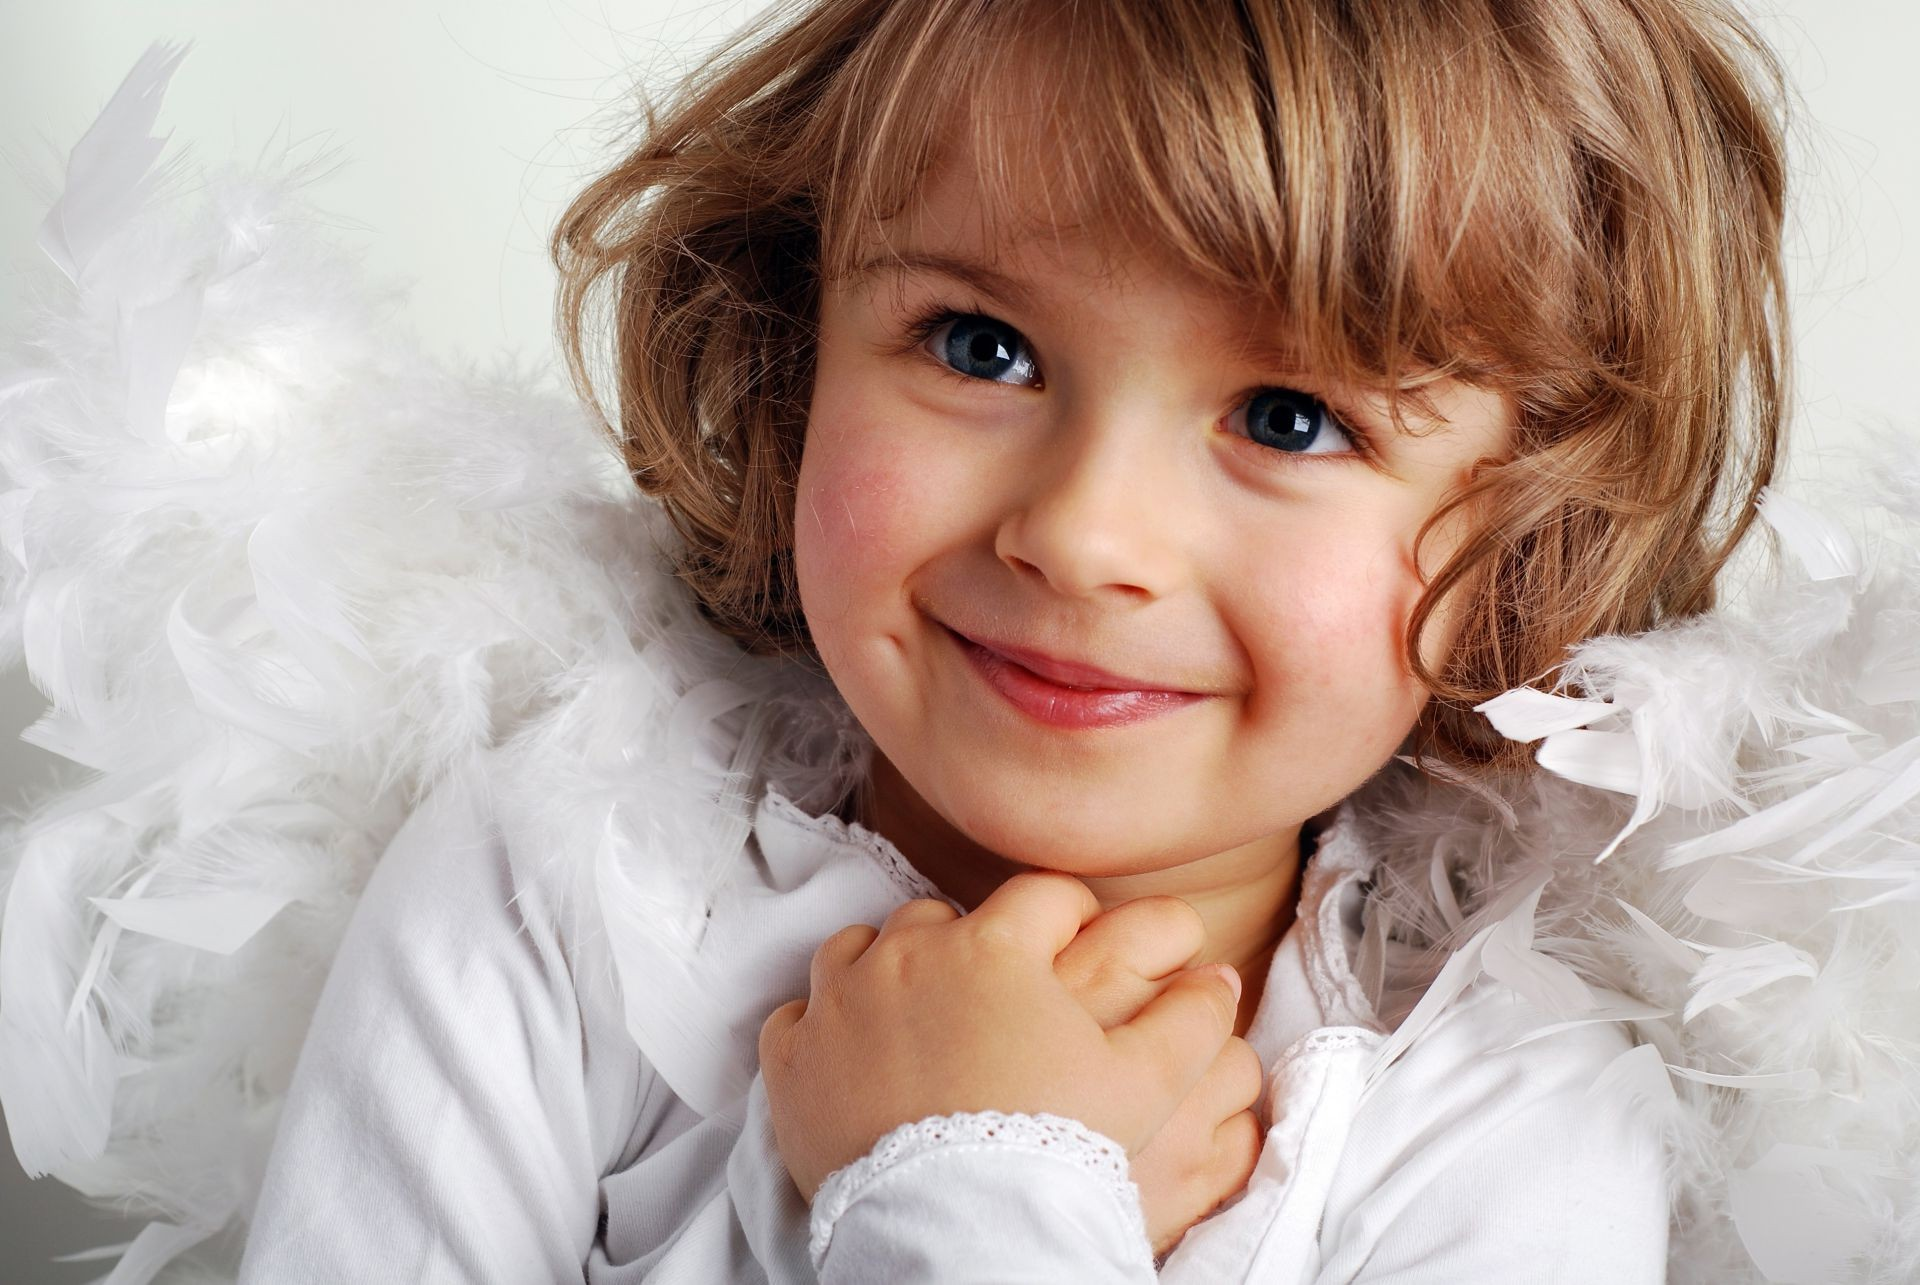 childhood beautiful little girl cute child smile New y